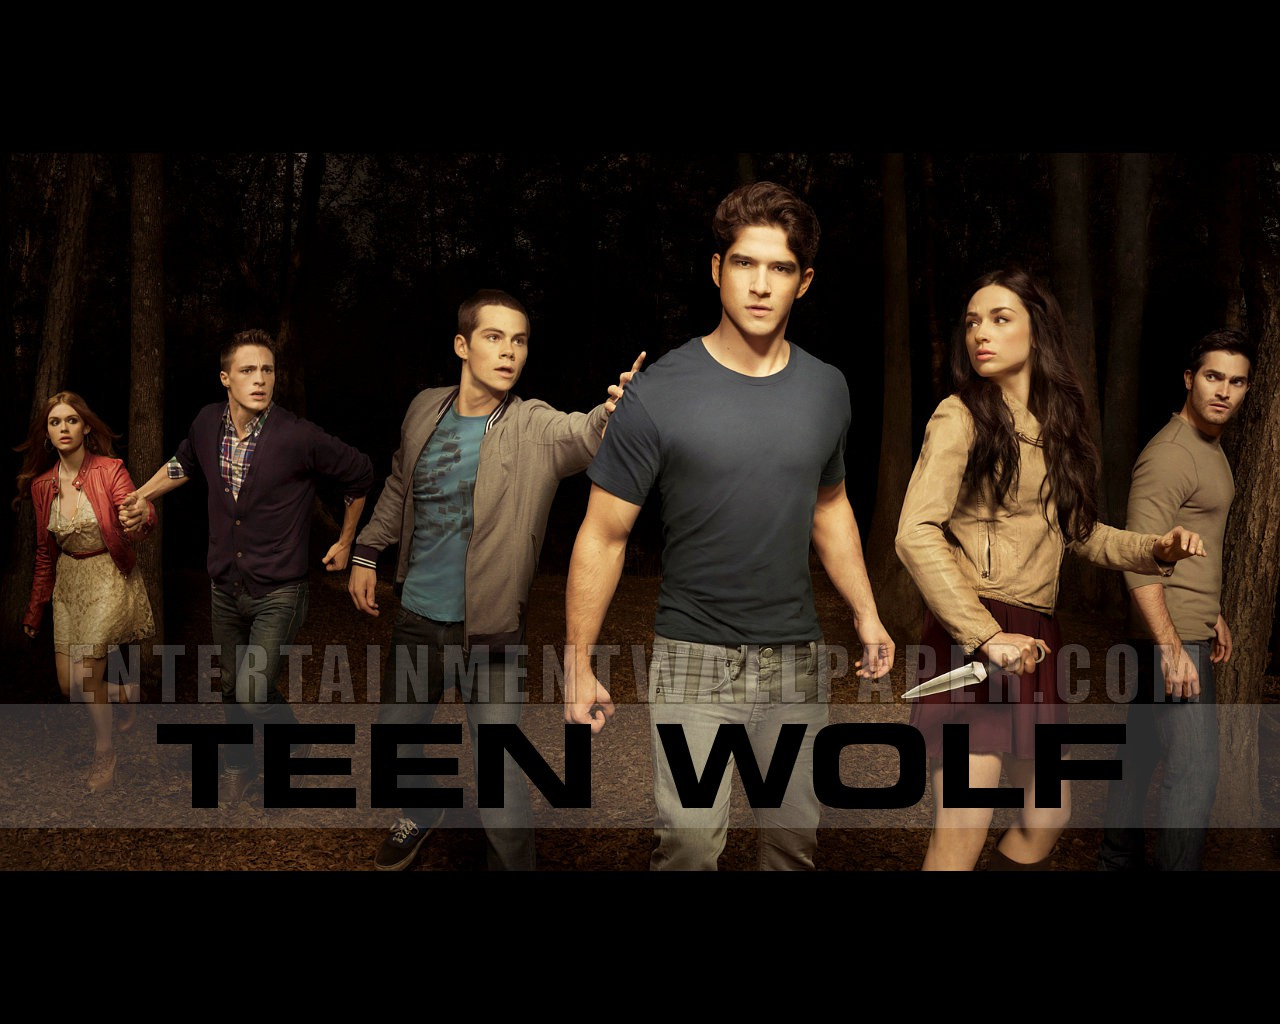 Teen Wolf Wallpaper Desktop - WallpaperSafari